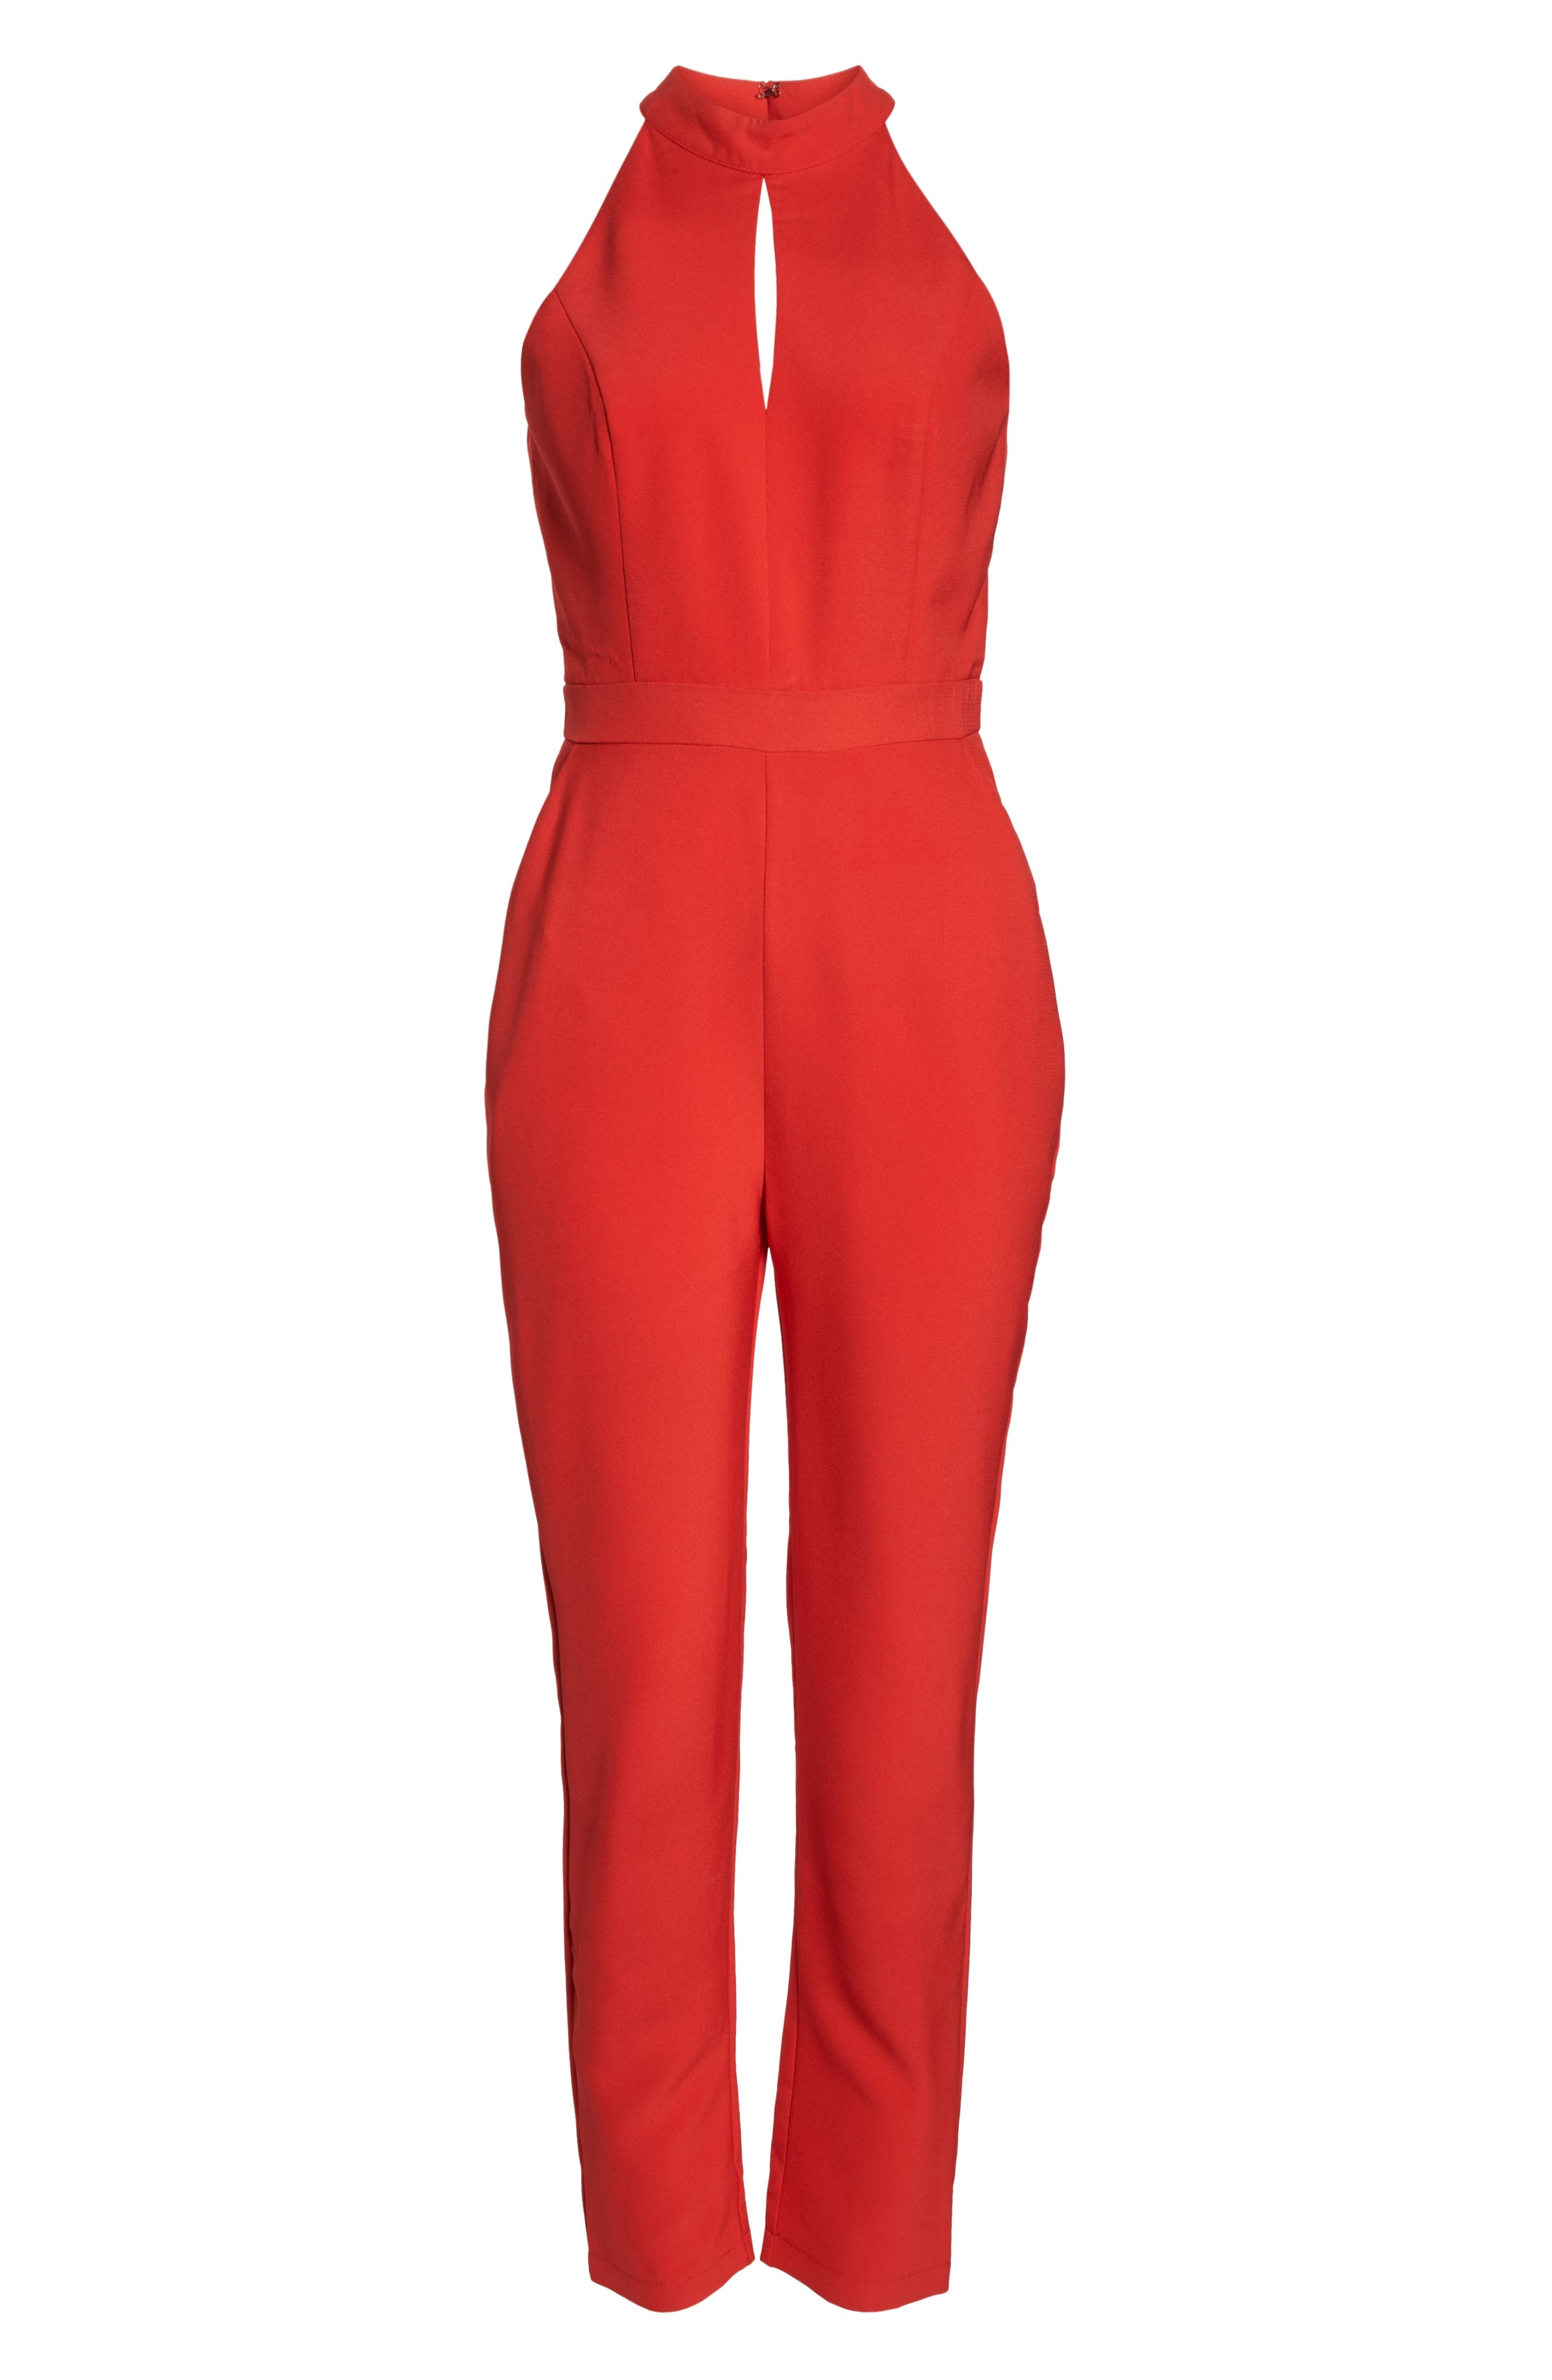 ADELYN RAE,                             Shaylie Scalloped Back Jumpsuit,                             Alternate thumbnail 7, color,                             600